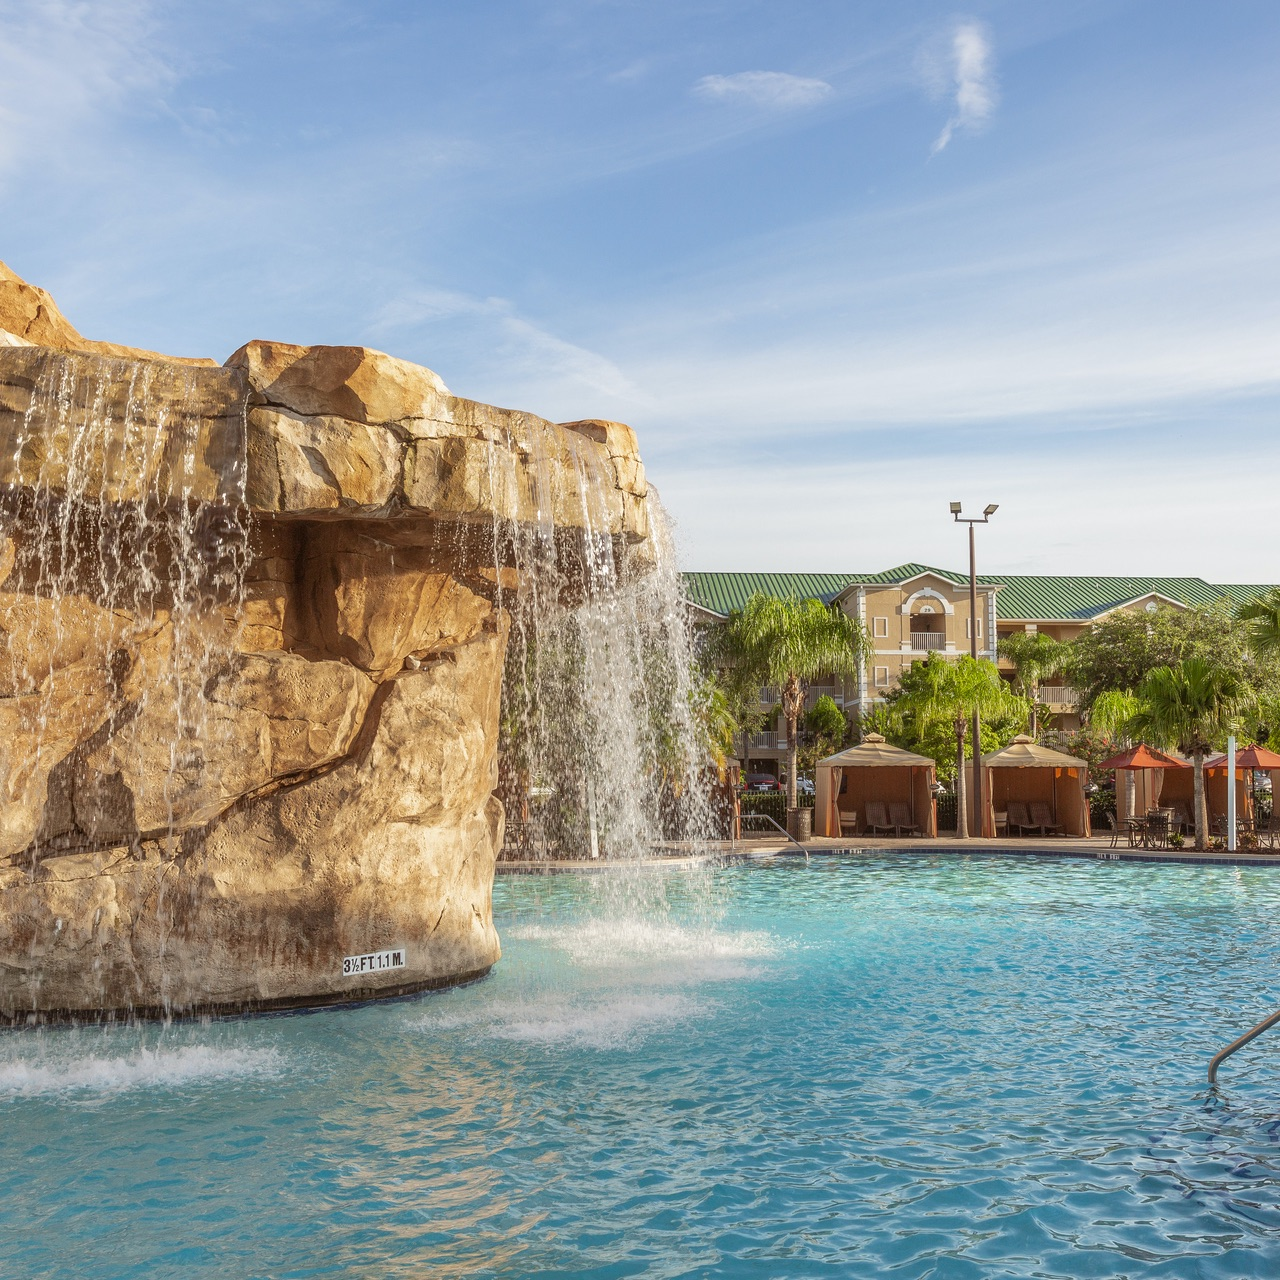 Pool area with grotto waterfall at Mystic Dunes